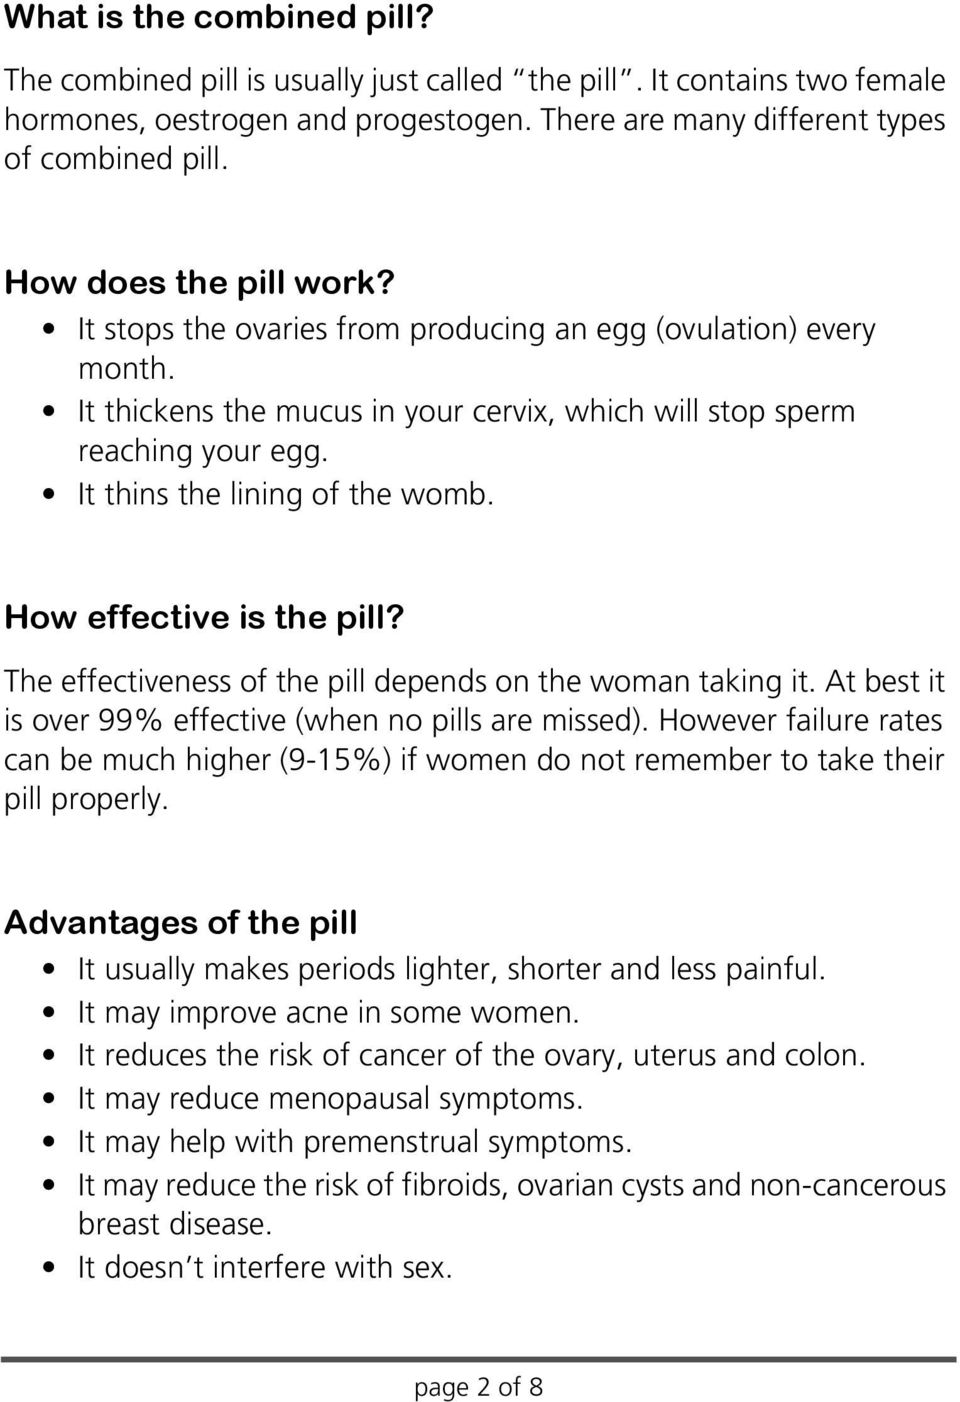 It thins the lining of the womb. How effective is the pill? The effectiveness of the pill depends on the woman taking it. At best it is over 99% effective (when no pills are missed).